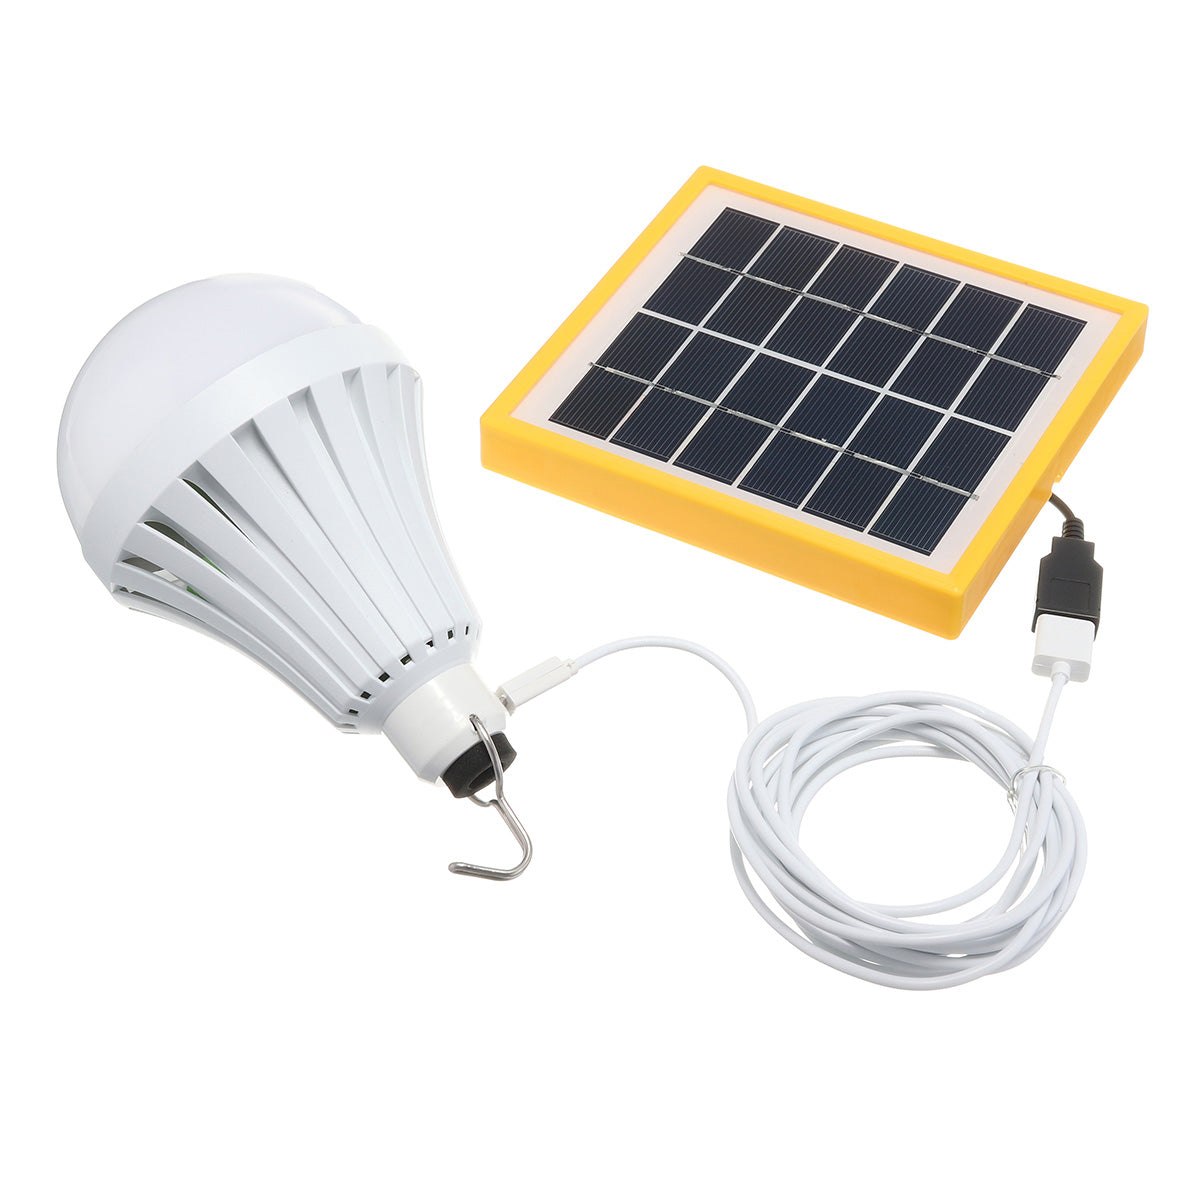 Portable LED Solar Light Panel USB Powered Bulb Emergency Lamp For Home Camping